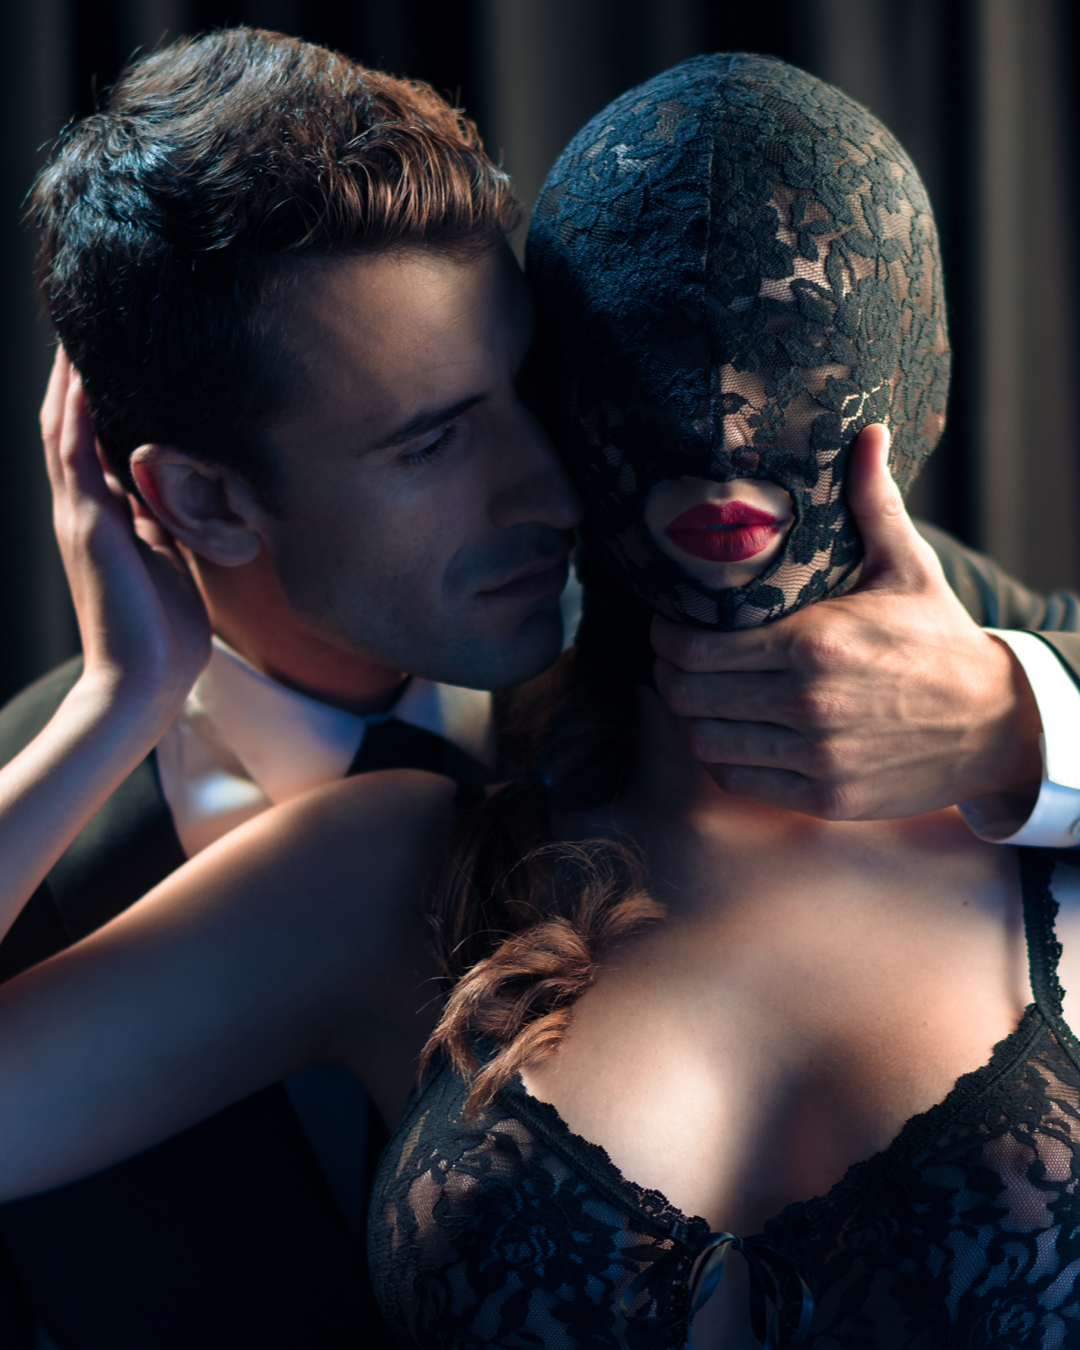 Scandal Lace Sensory Deprivation Hood - Black on model with man holding her chin